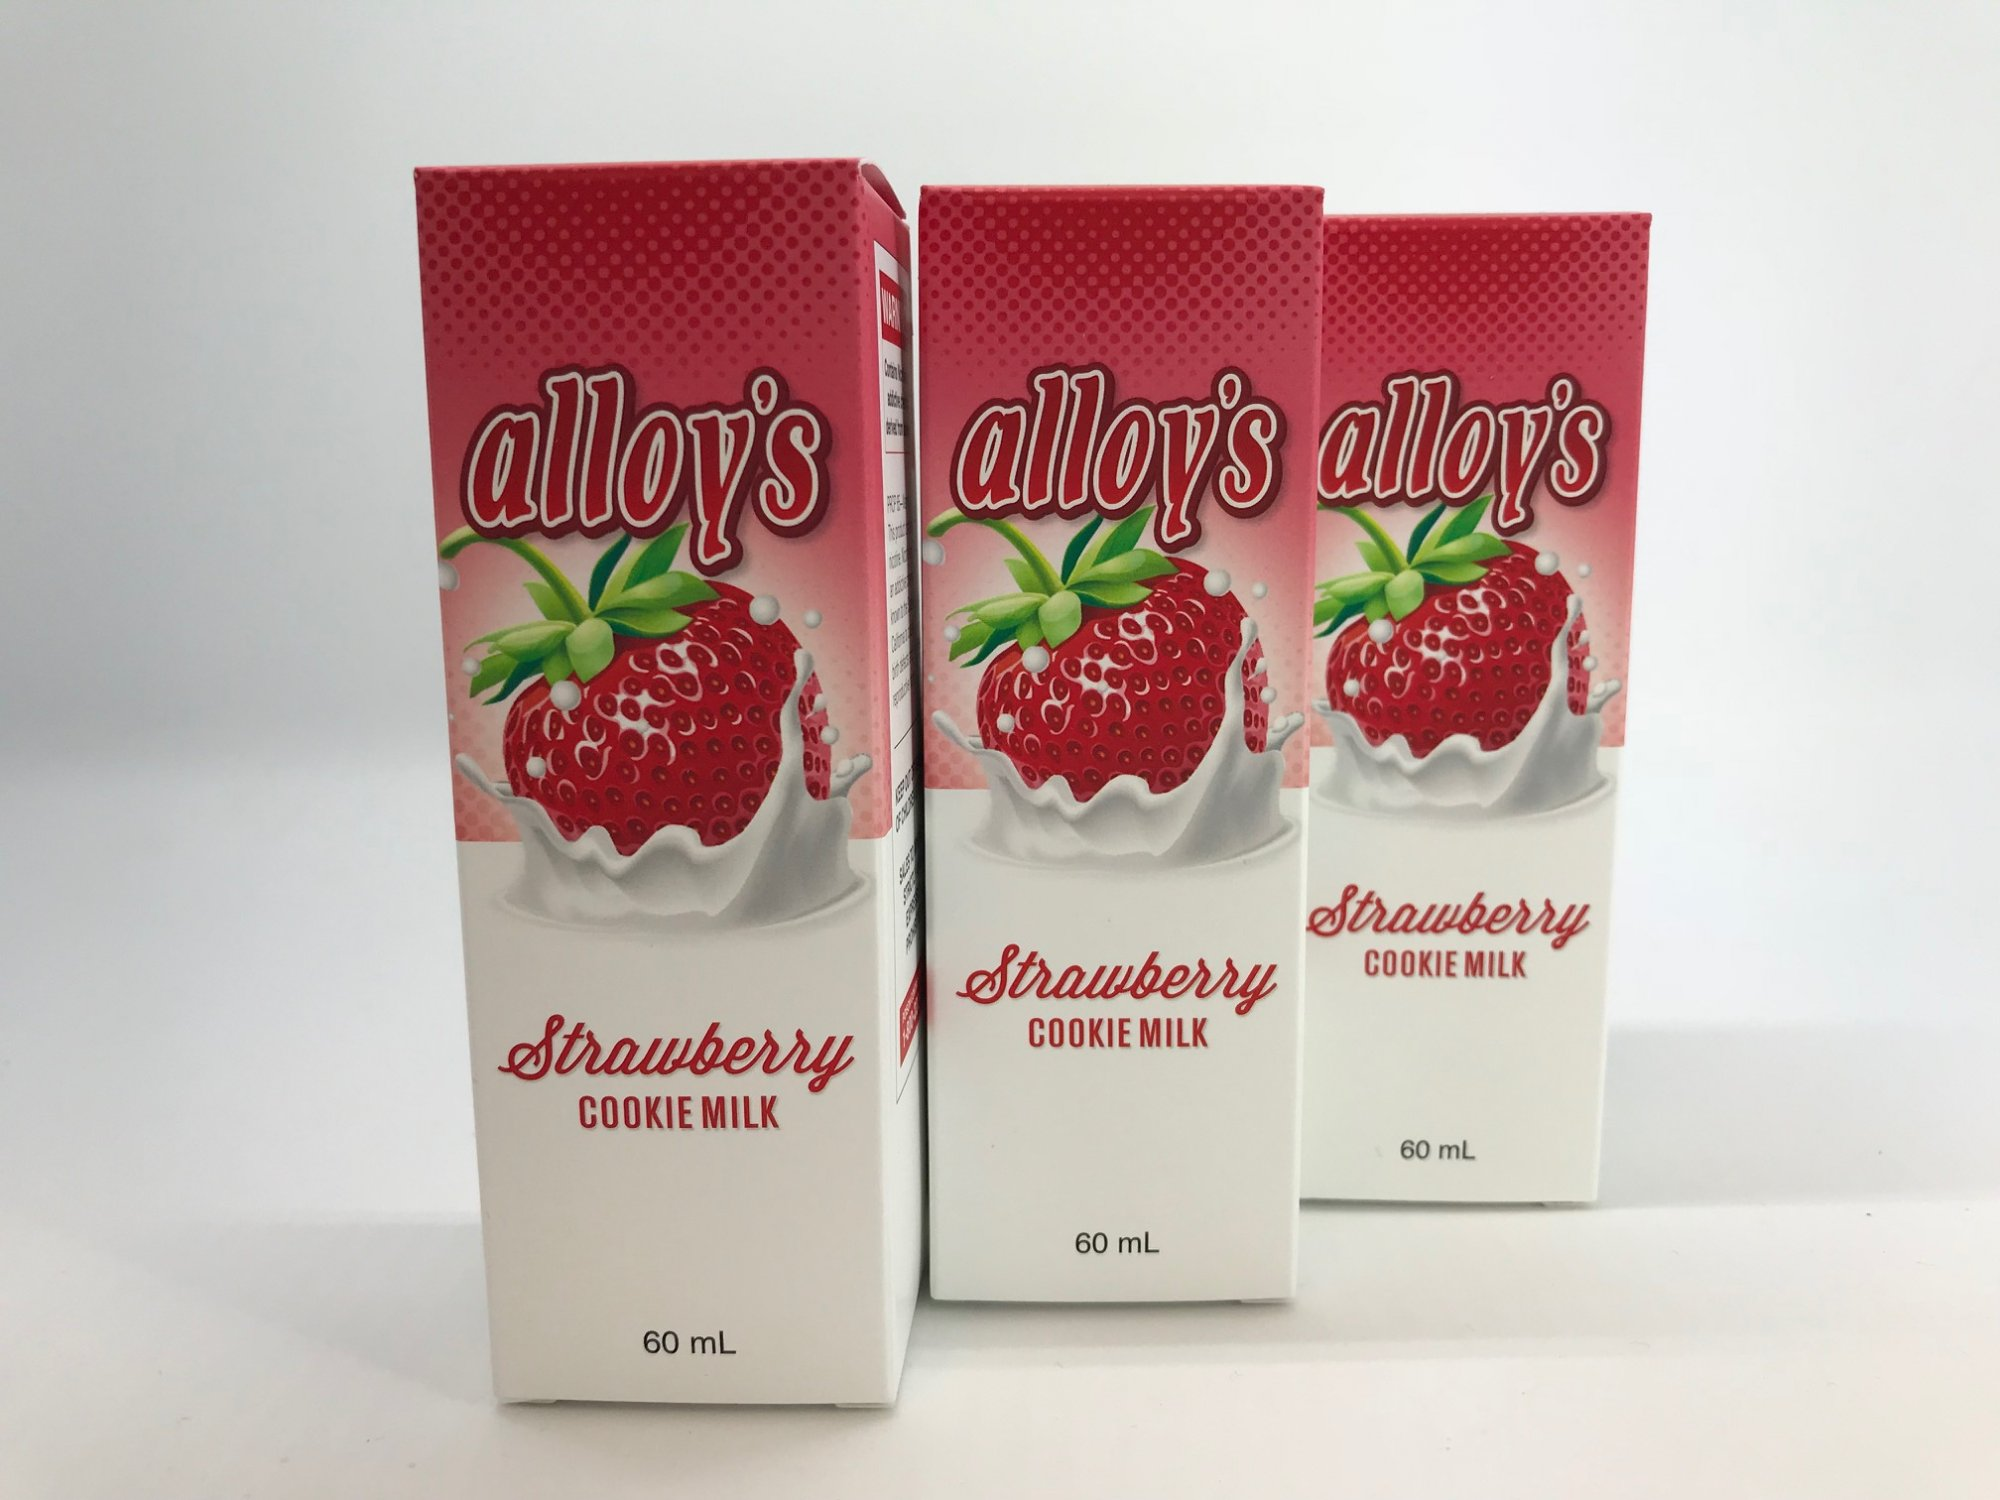 Dunkd Strawberry eJuice